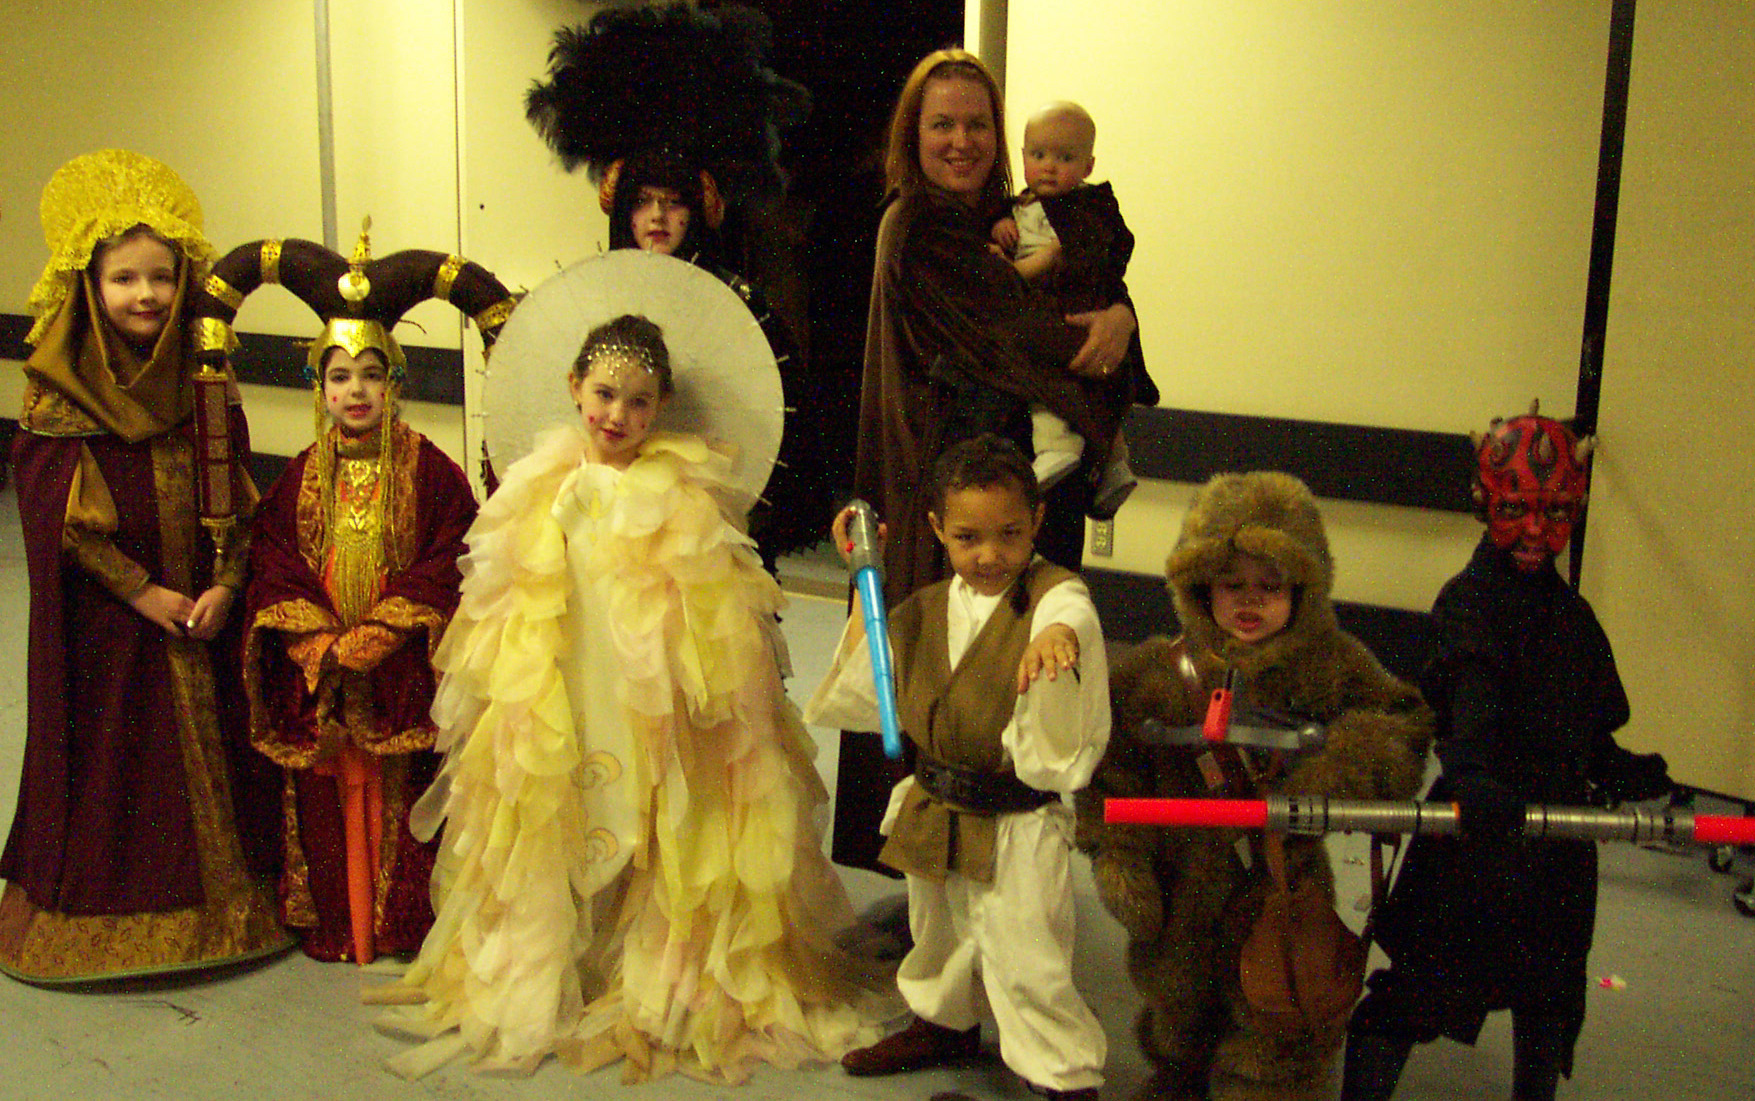 The Costume Contest at Celebration II featured a kids category. The younglings showed the adults that spectacular costumes were not just for grownups. Photo by Kathy Van Beuningen.